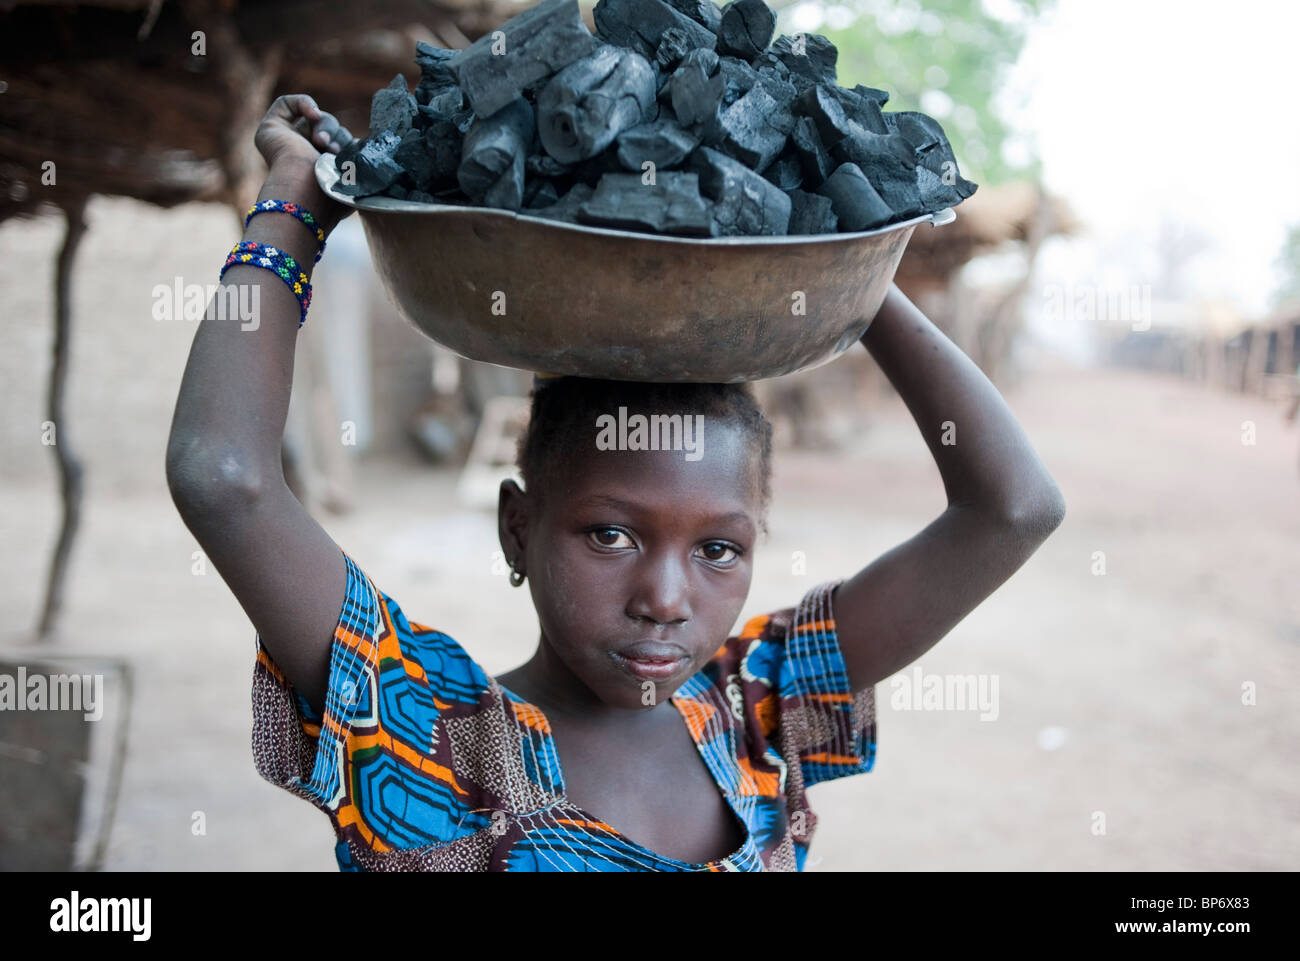 Africa Mali - girl carry charcoal on the head for selling as cooking fuel for kitchen stove - Stock Image